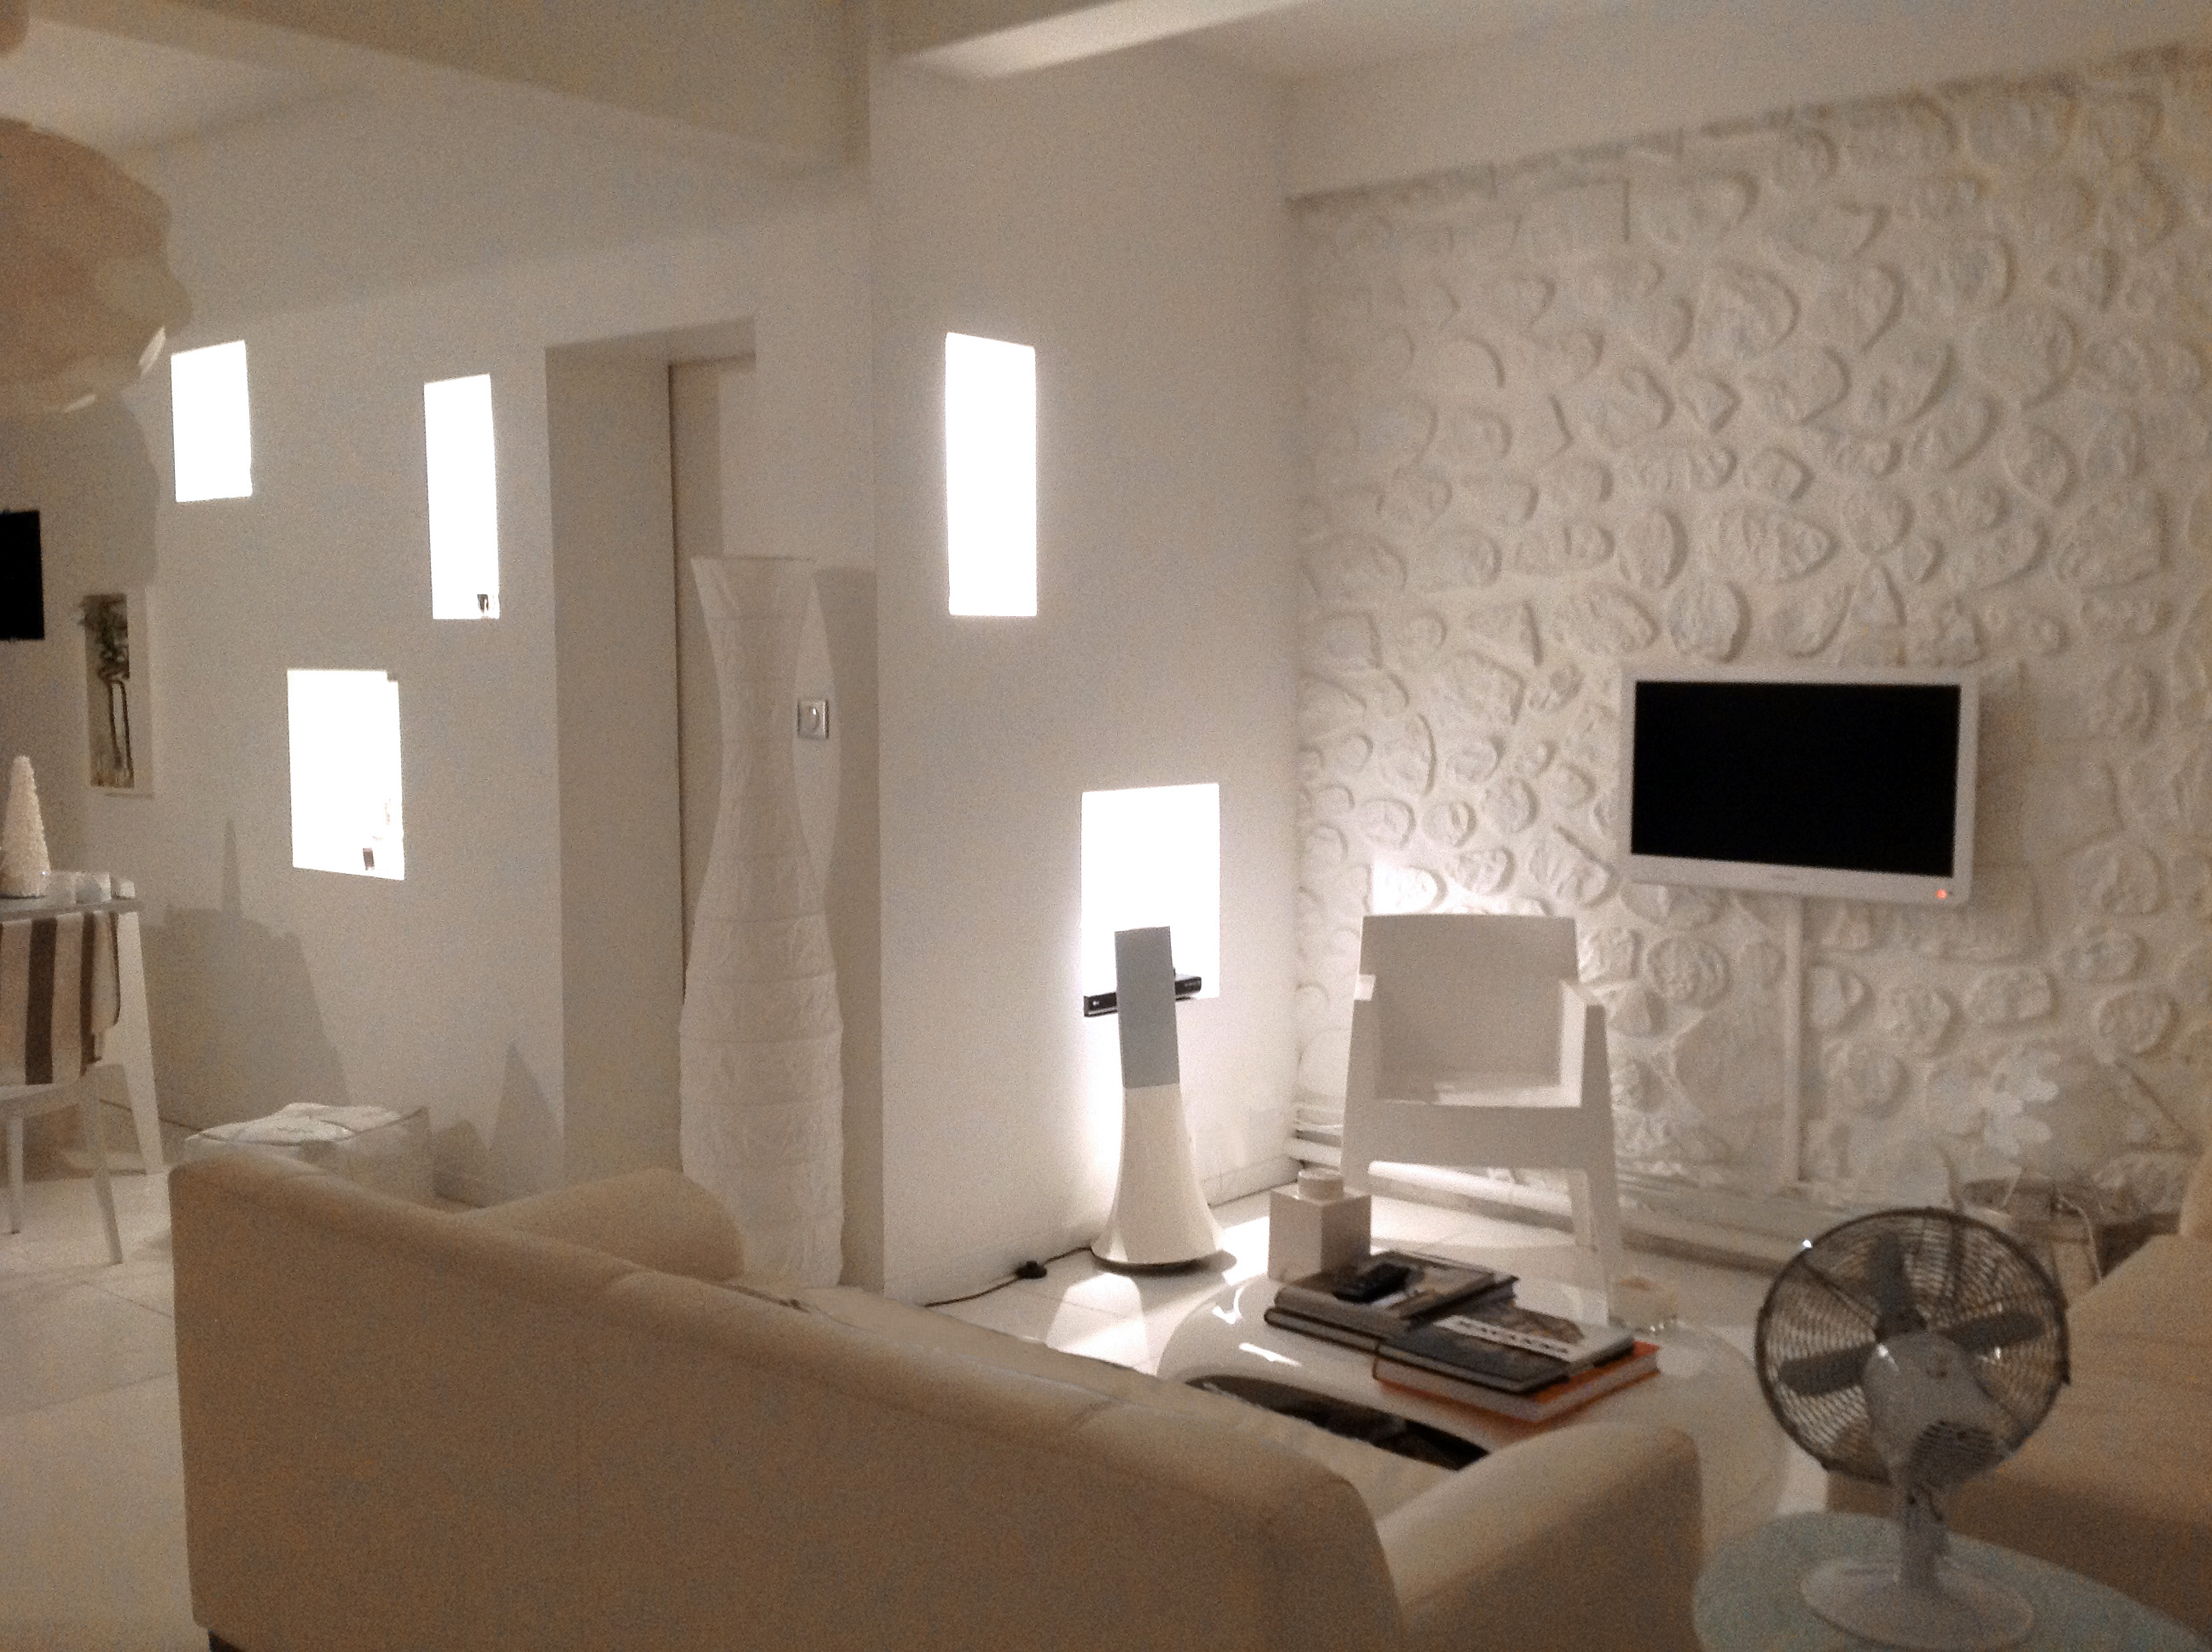 Mod le d coration salon blanc for Modele deco interieur maison